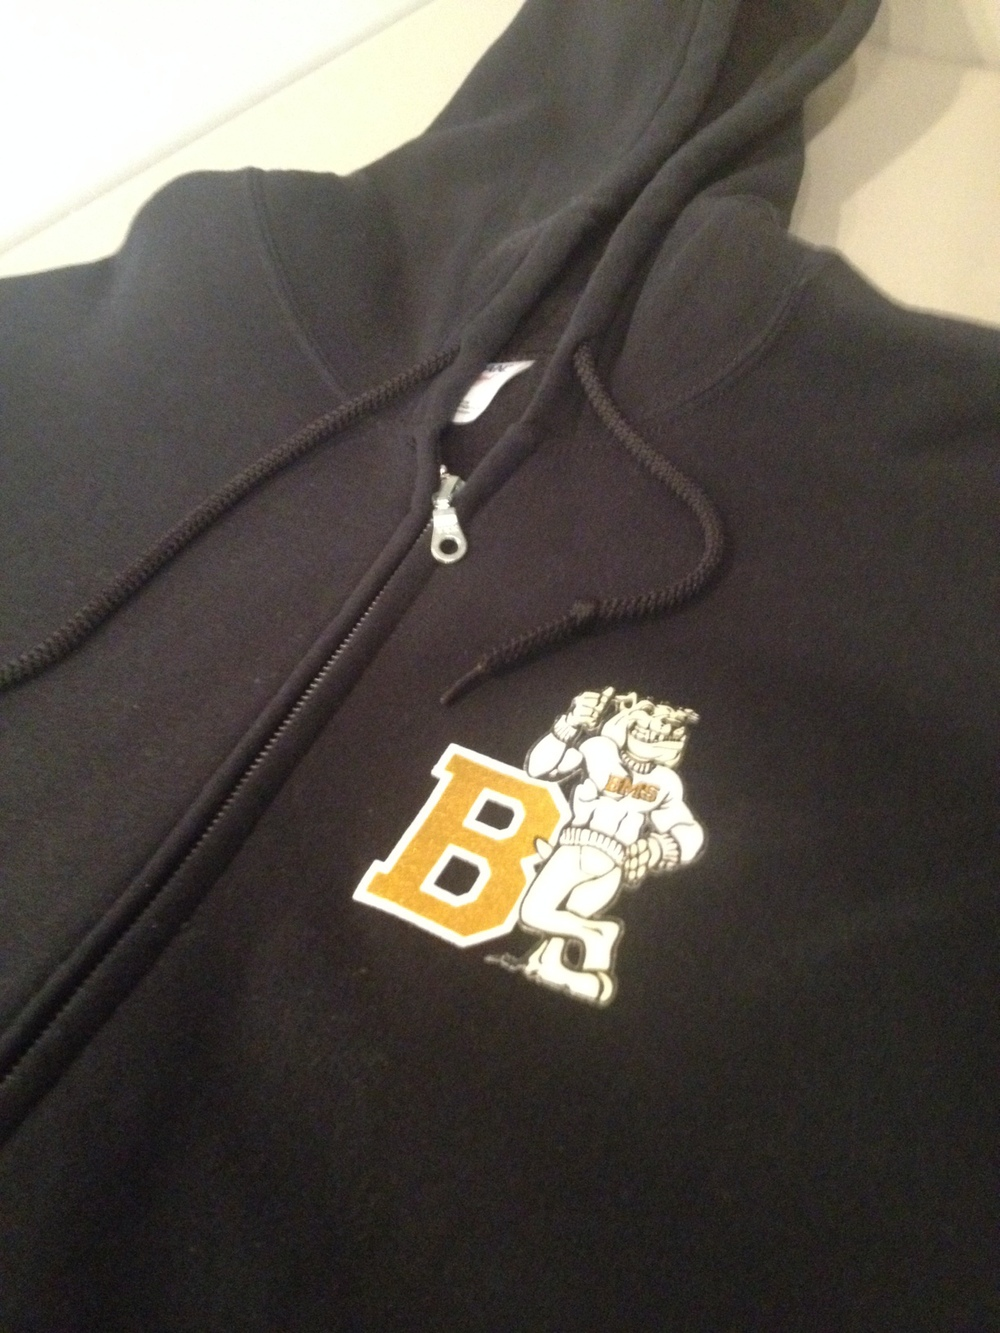 Zip Hoodie for Beveridge Magnet School